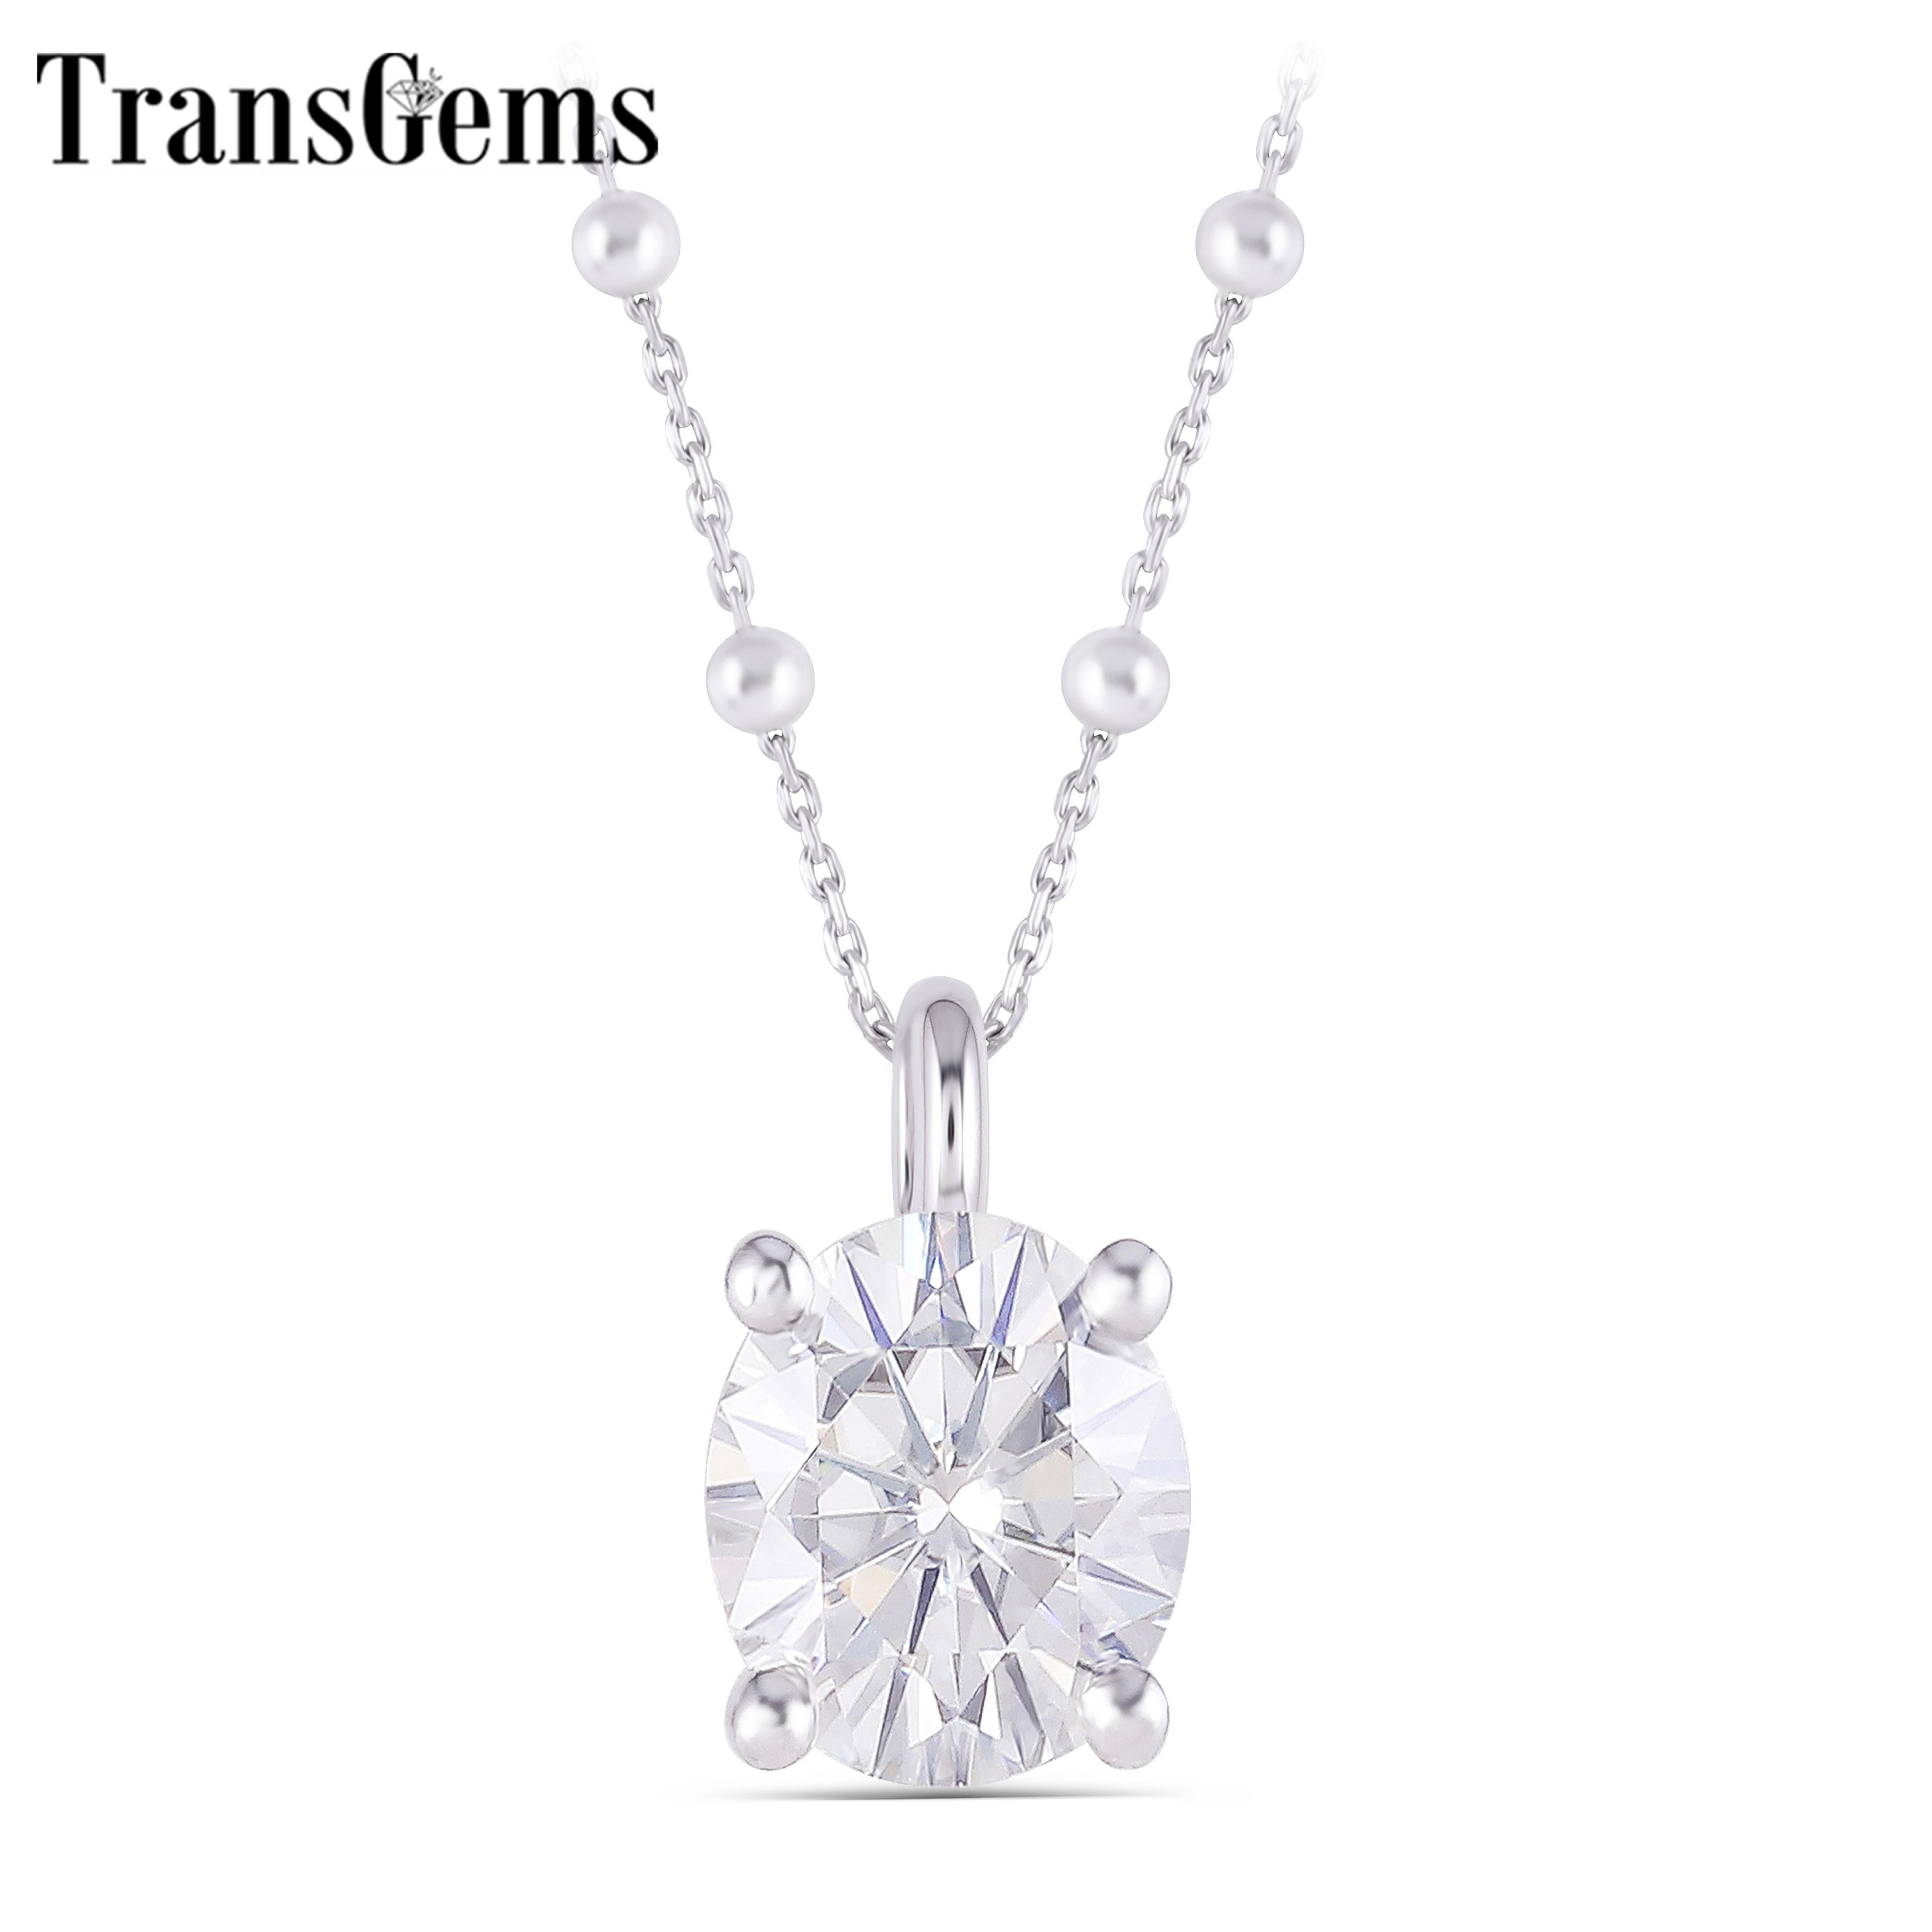 TransGems 14K 585 White Gold Center 2ct 7X8mm F Color Oval Moissanite Pendant Necklace For Women Fine Jewelry